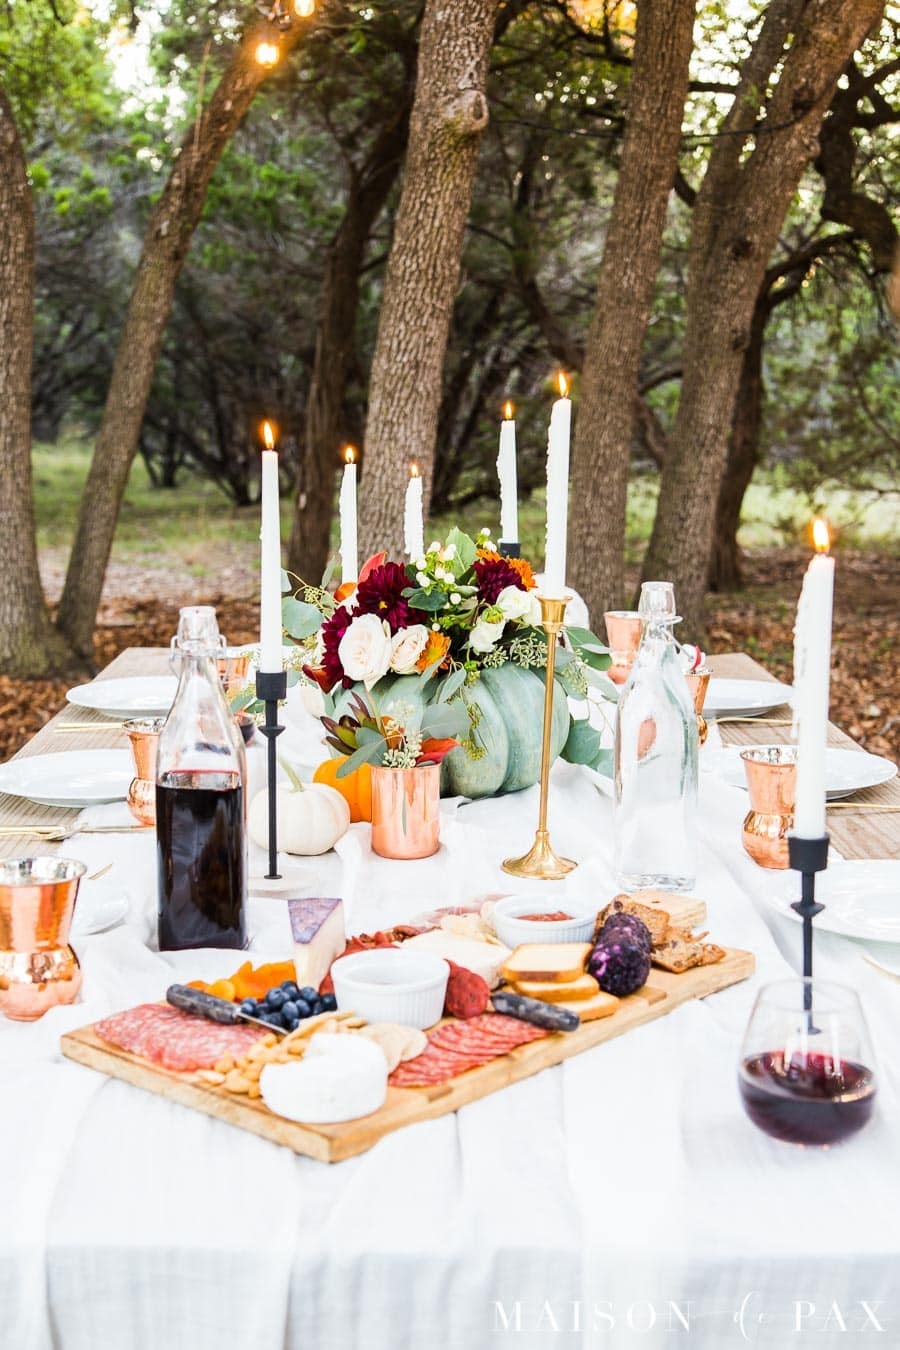 outdoor thanksgiving table with pumpkins and candles | Maison de Pax